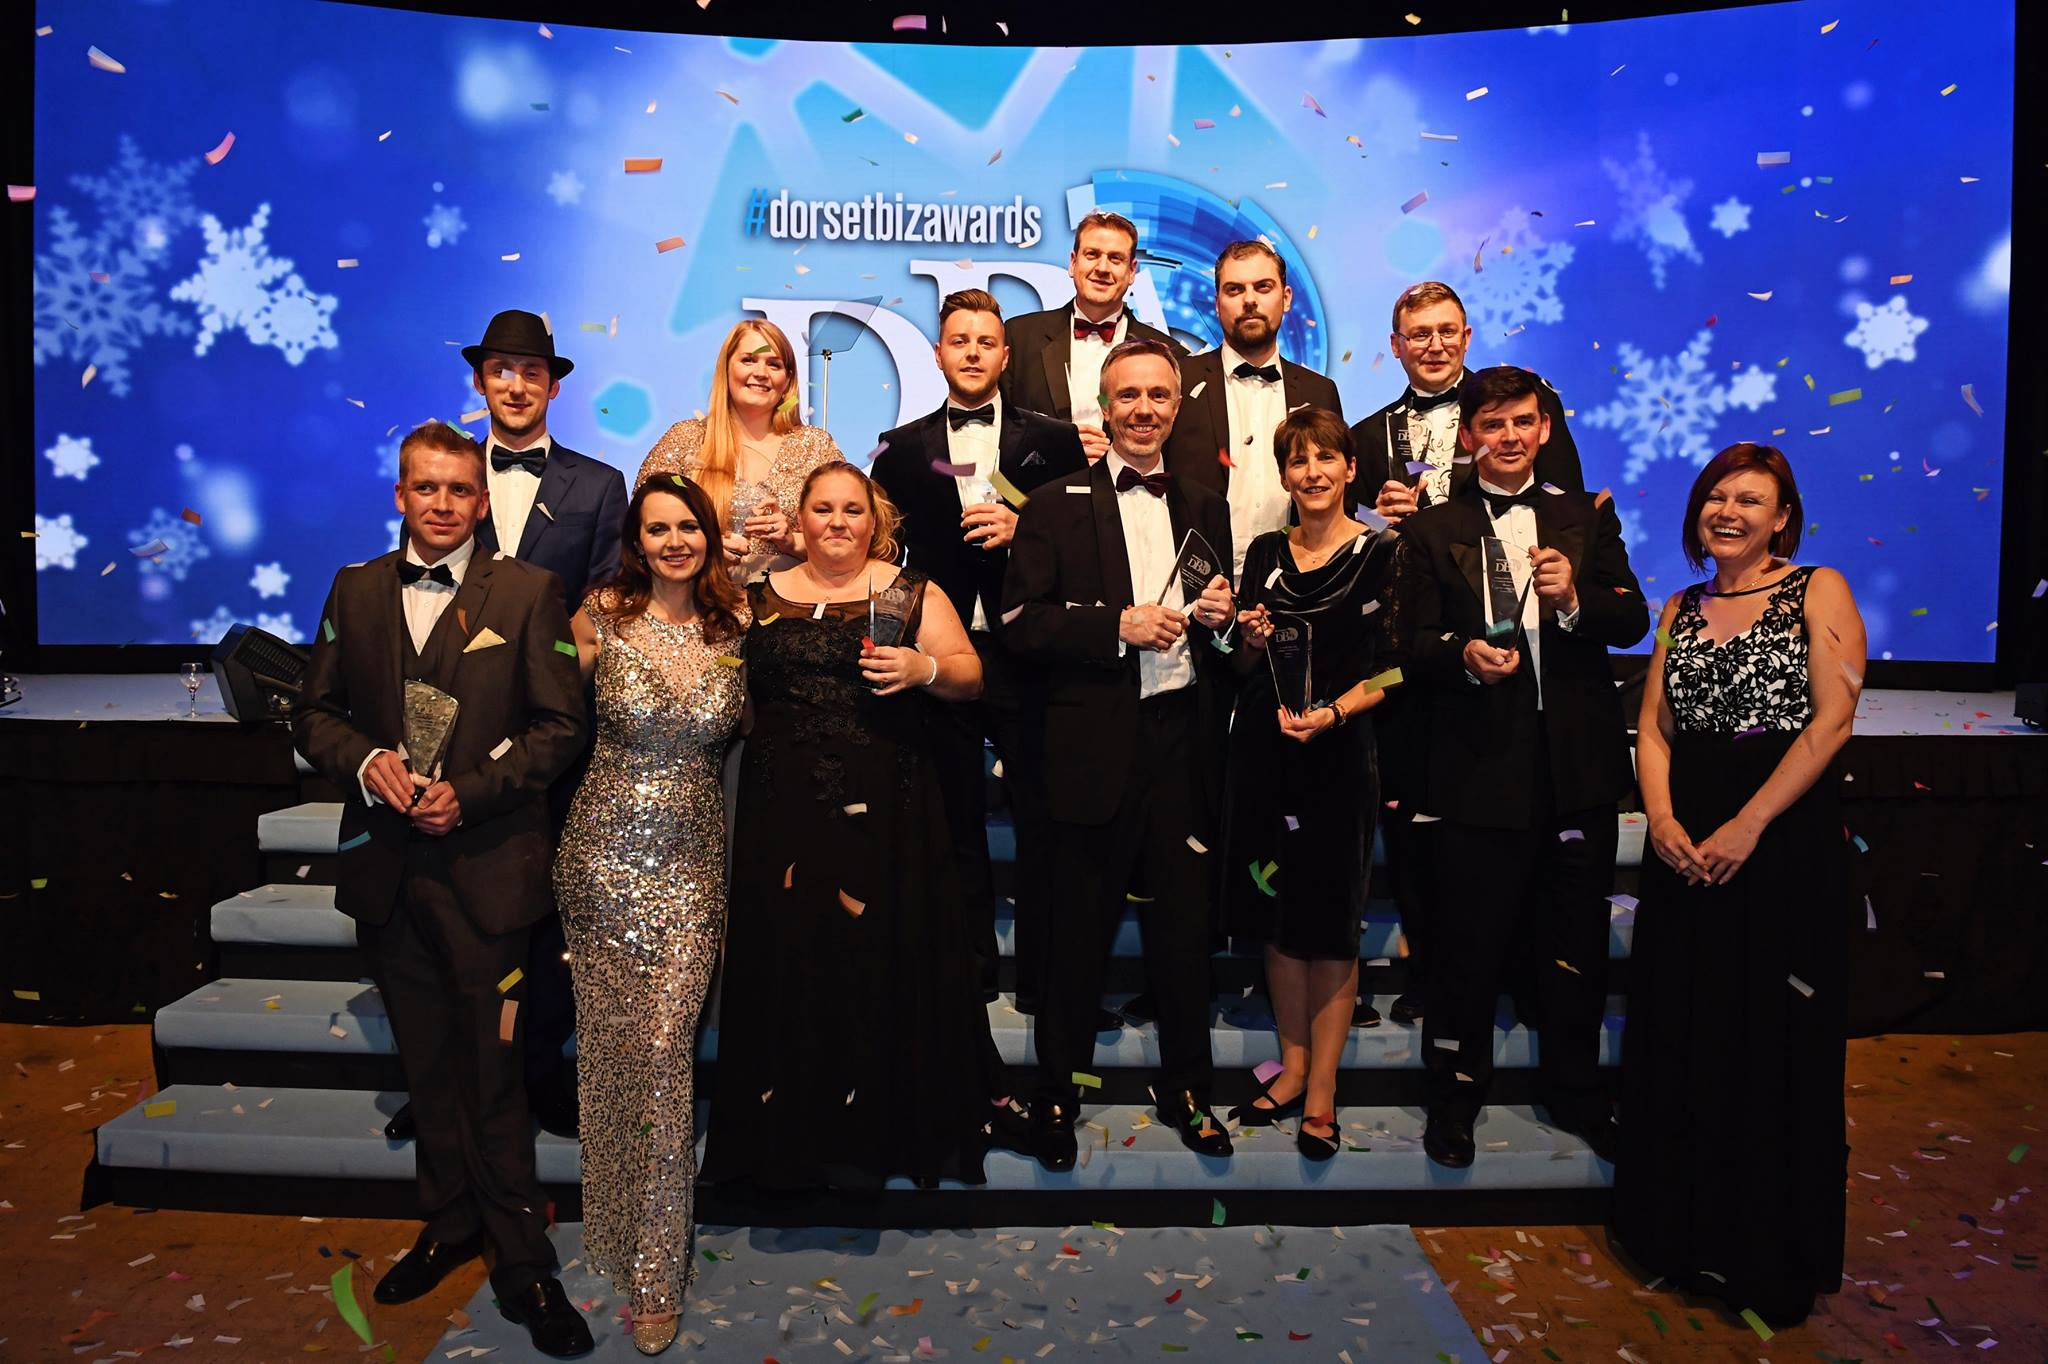 Dorset Business Award Winners 2016